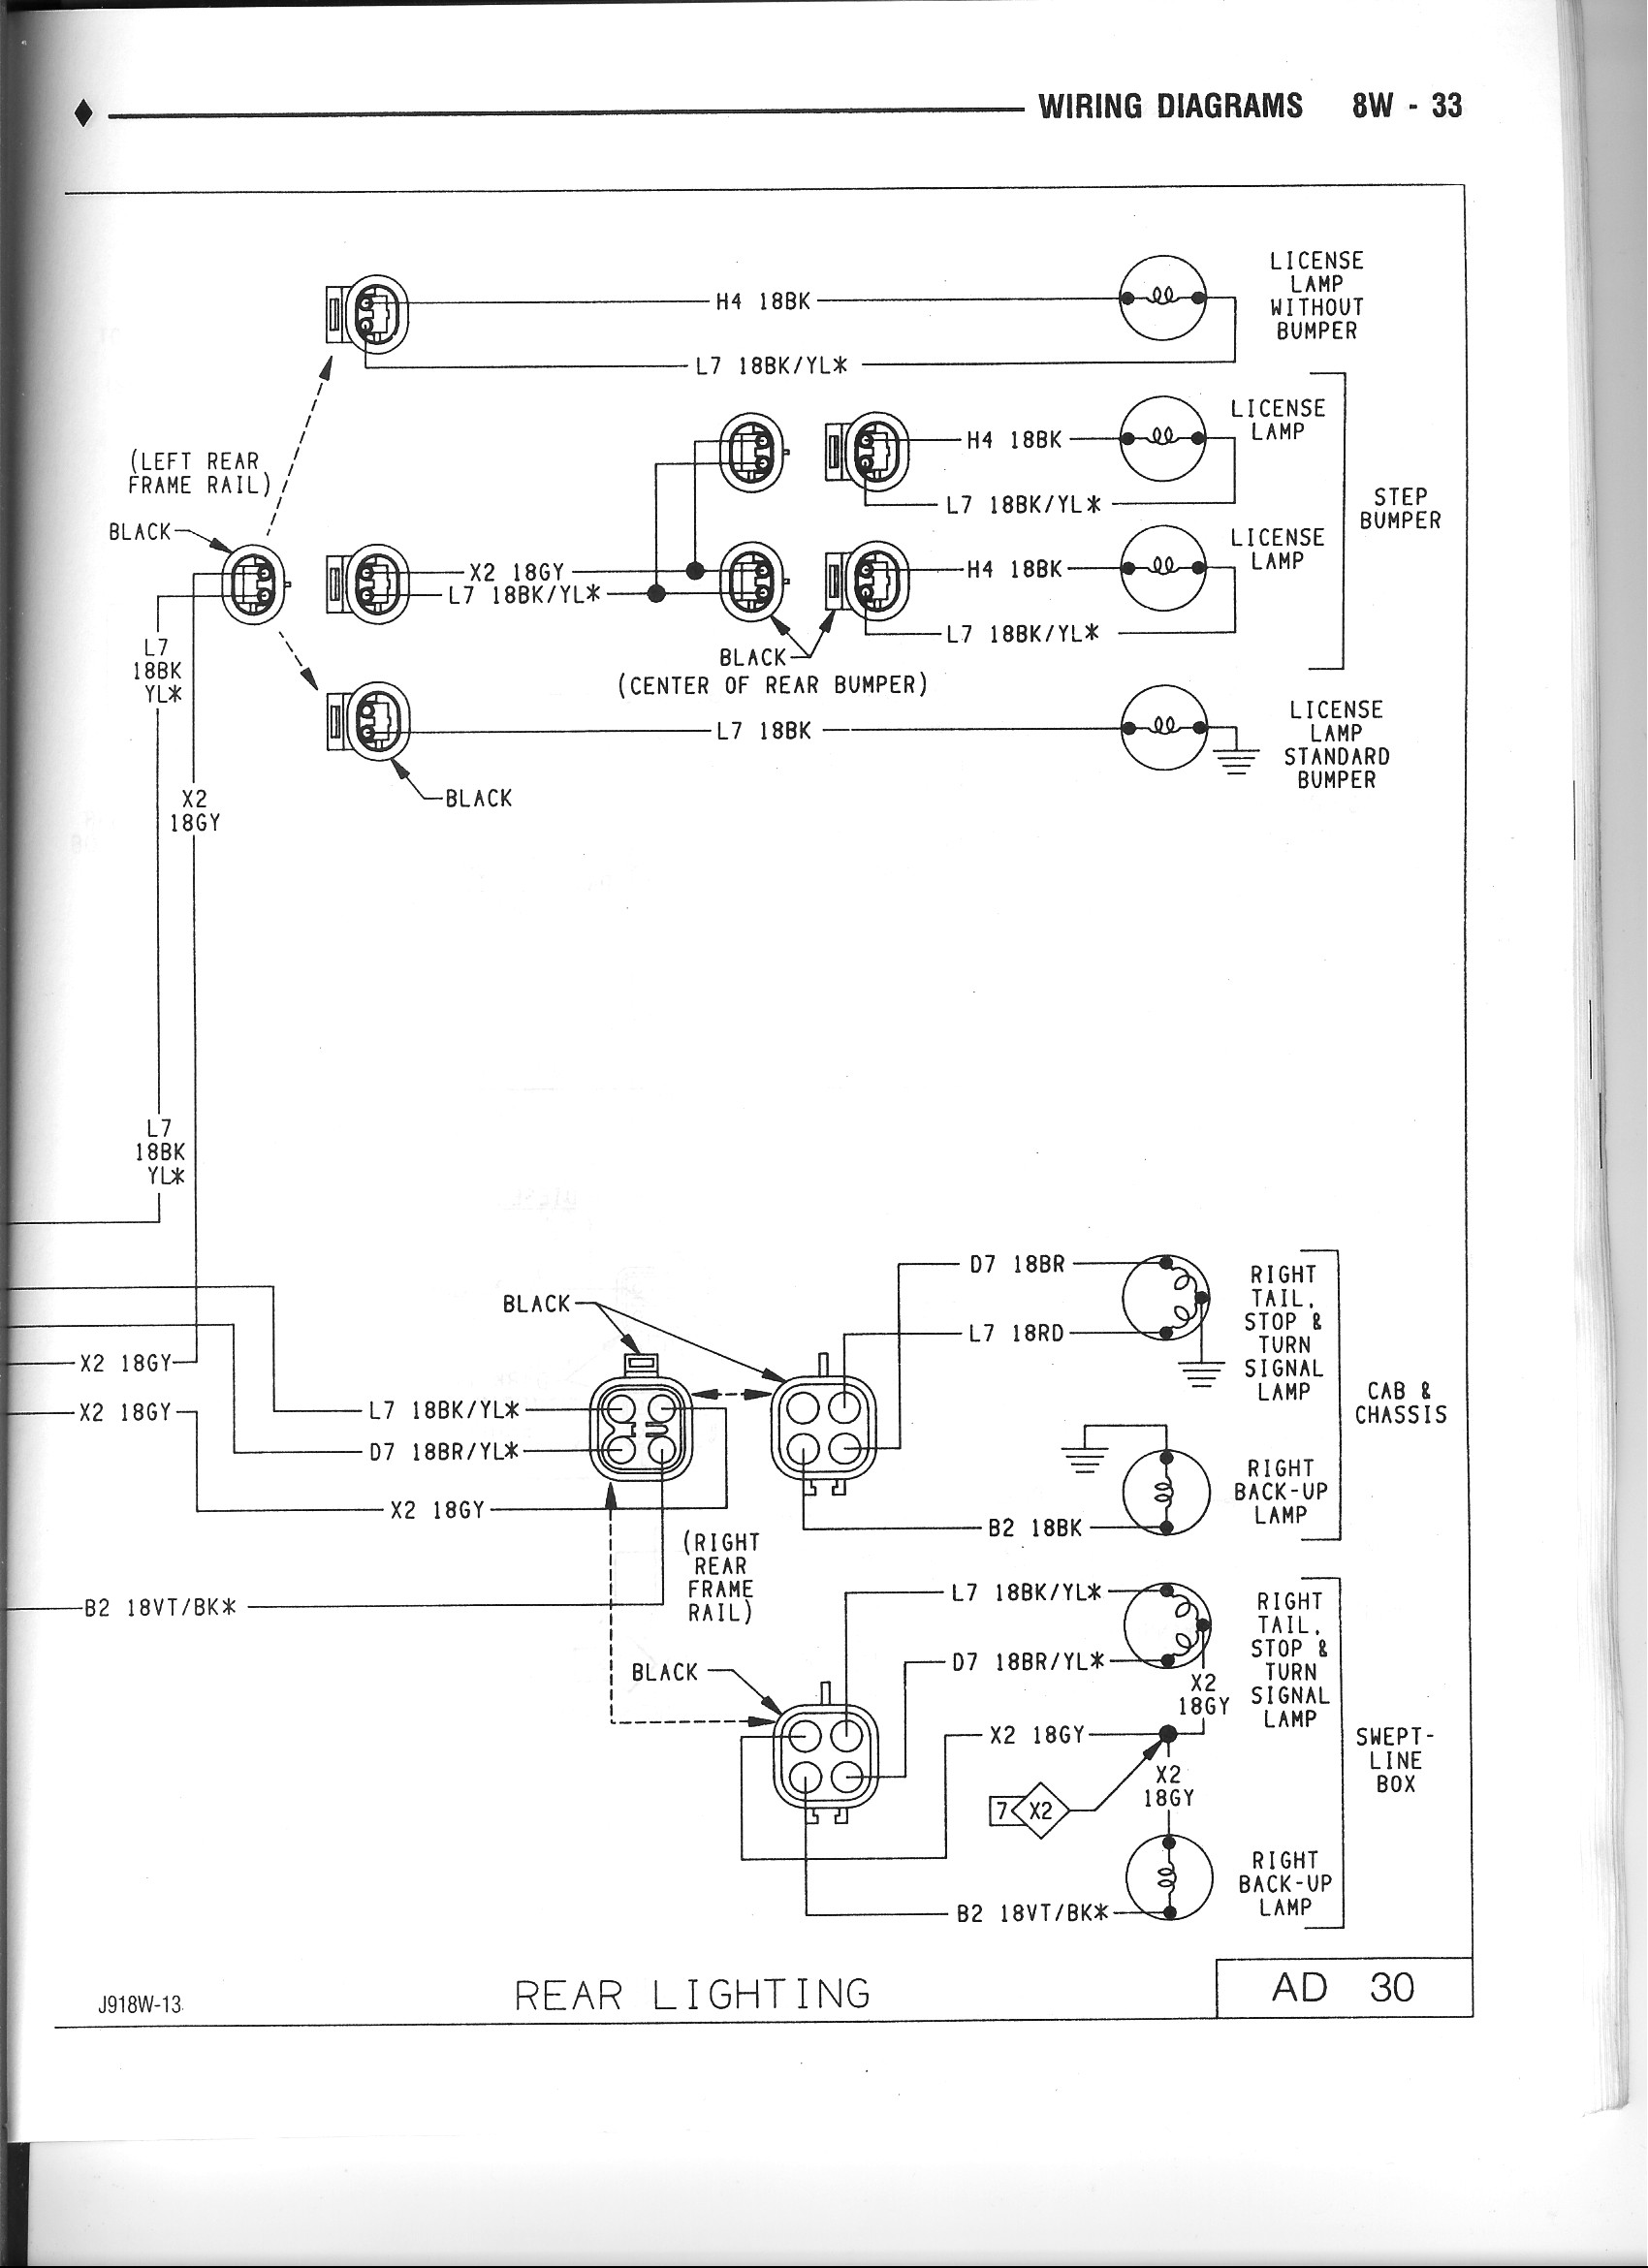 1991 dodge dynasty wiring diagram 1991 dodge w250 wiring diagram tail light wiring diagram? - dodge cummins diesel forum #9